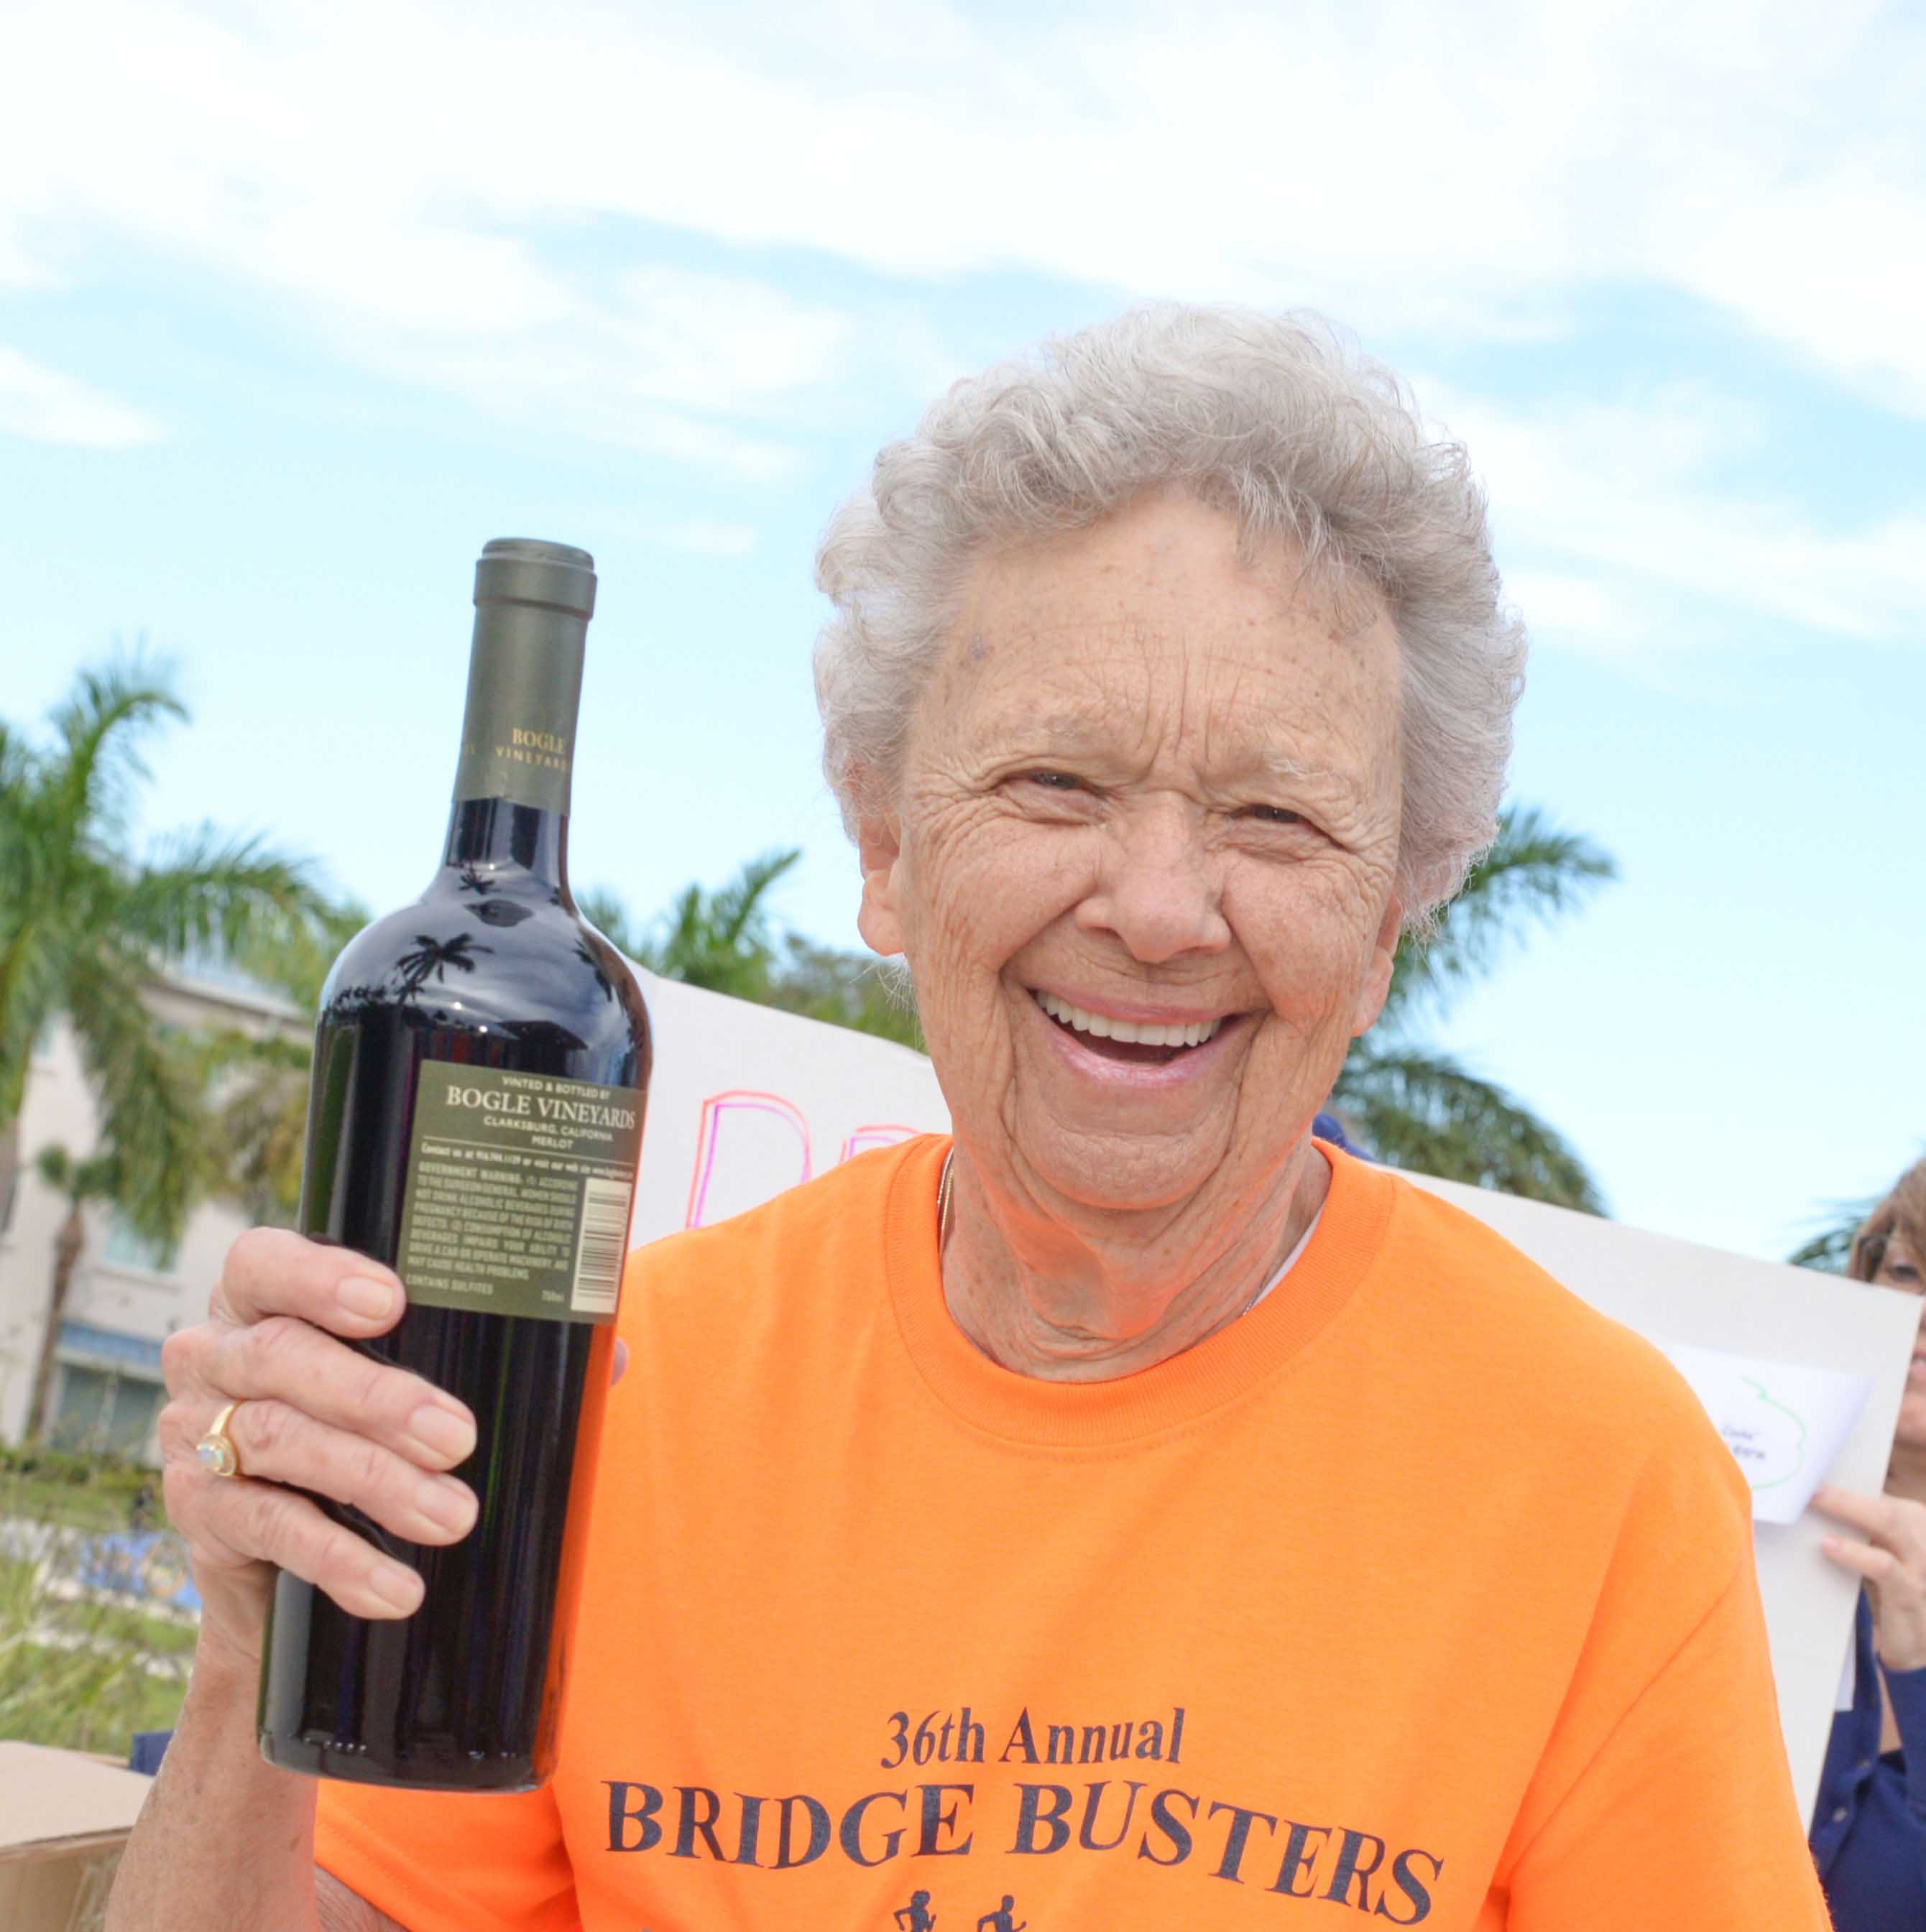 100 runners, walkers take to streets for Fort Pierce Sunrise Kiwanis Club's Bridge Buster 5K